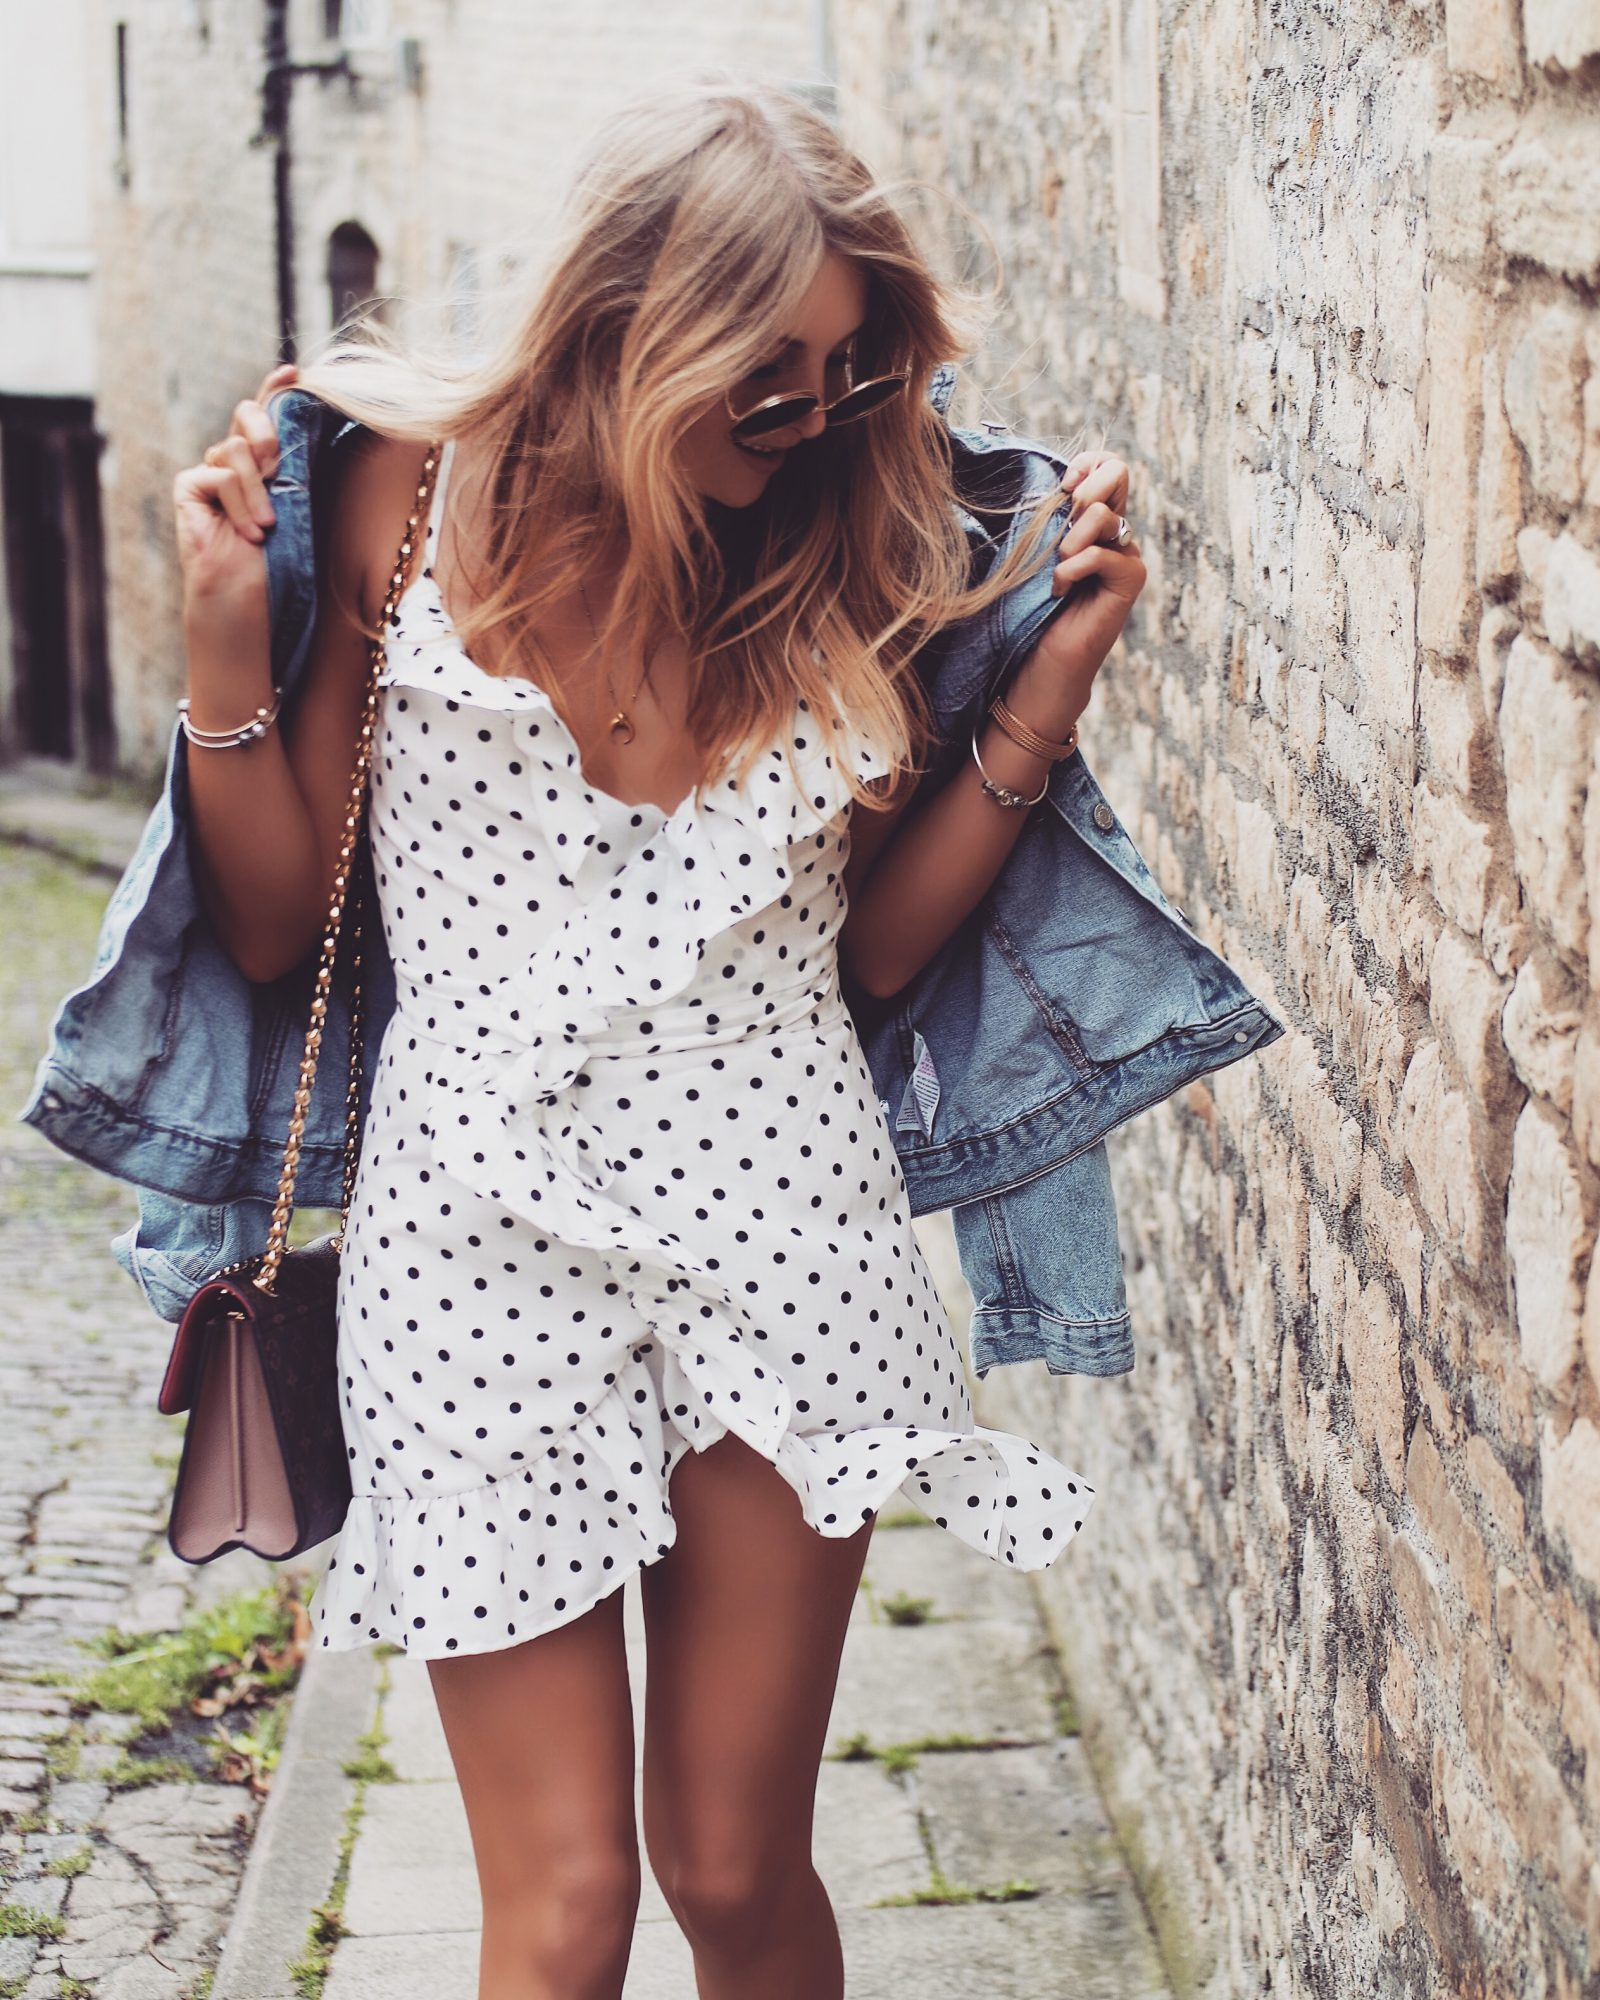 The Wrap Dress - Spotted Ruffle Dress - Fashion Blogger Street Style